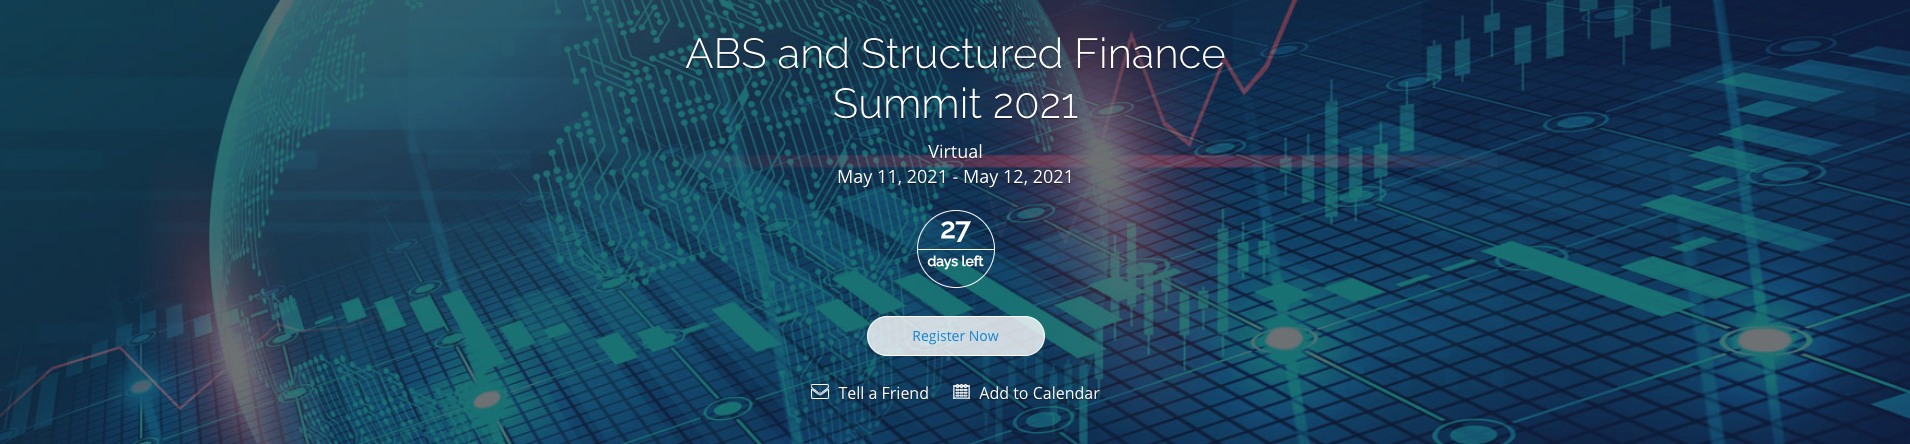 ABS and Structured Finance Summit 2021